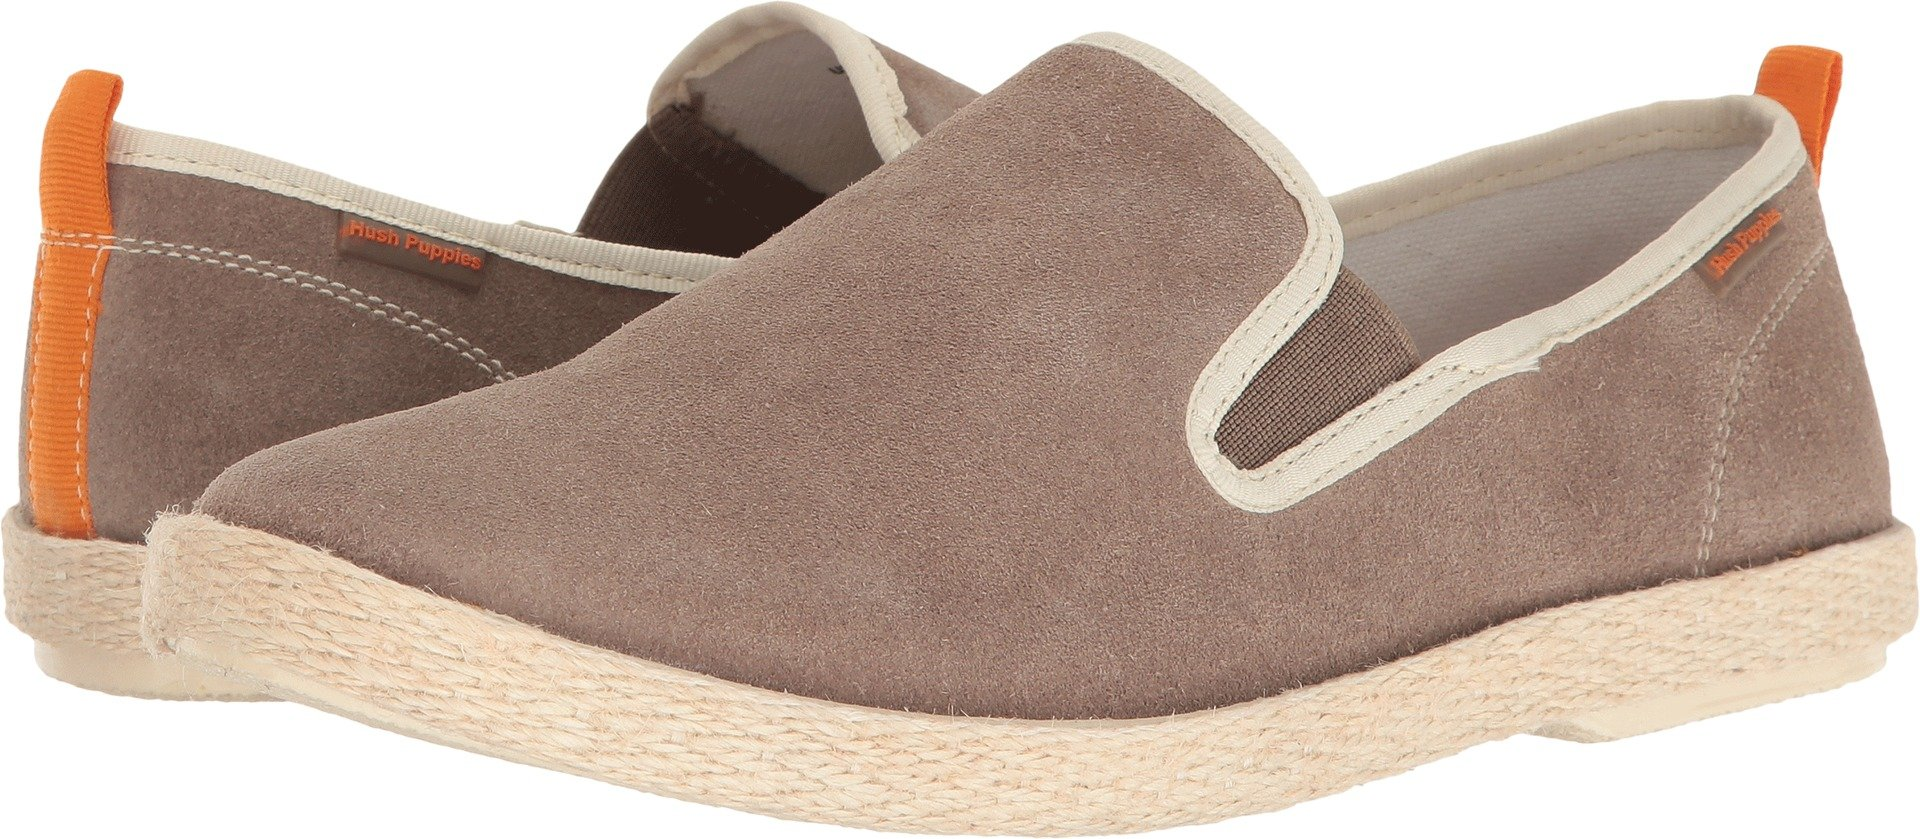 Hush Puppies Men's Bold Yahman Slip-on Loafer, Taupe Suede, 8 W US